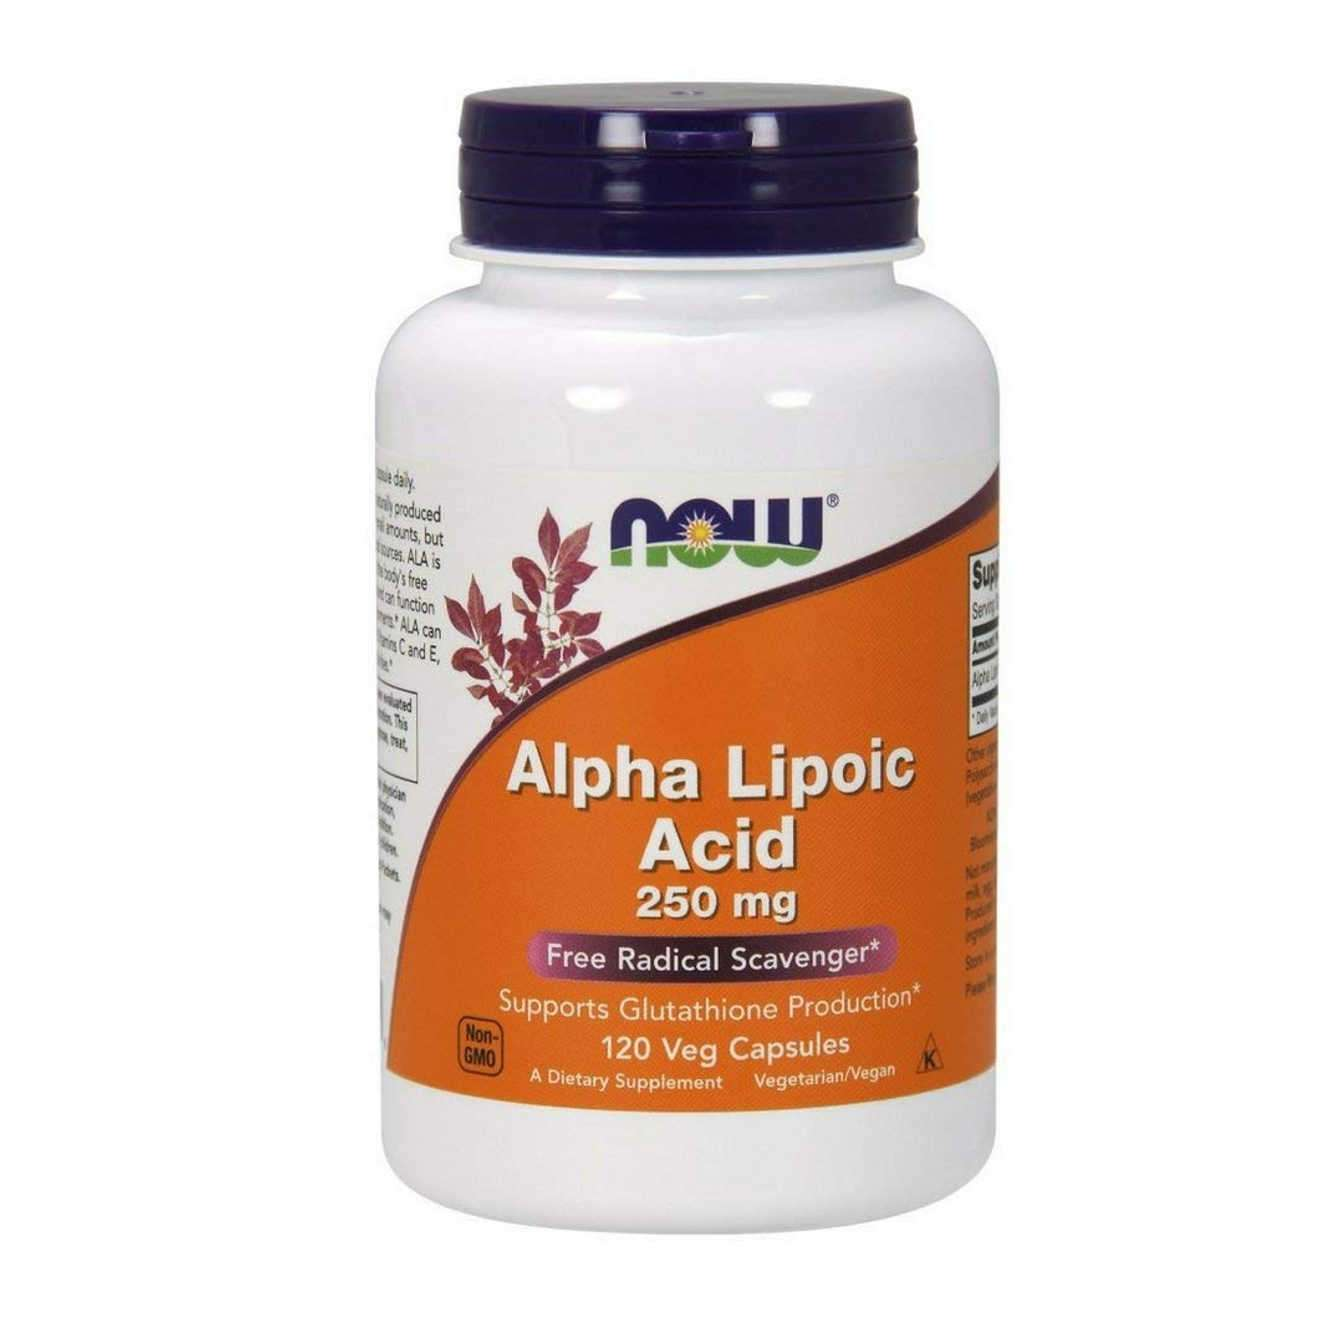 ALPHA LIPOIC ACID (ALA) 250mg - 120 veg caps